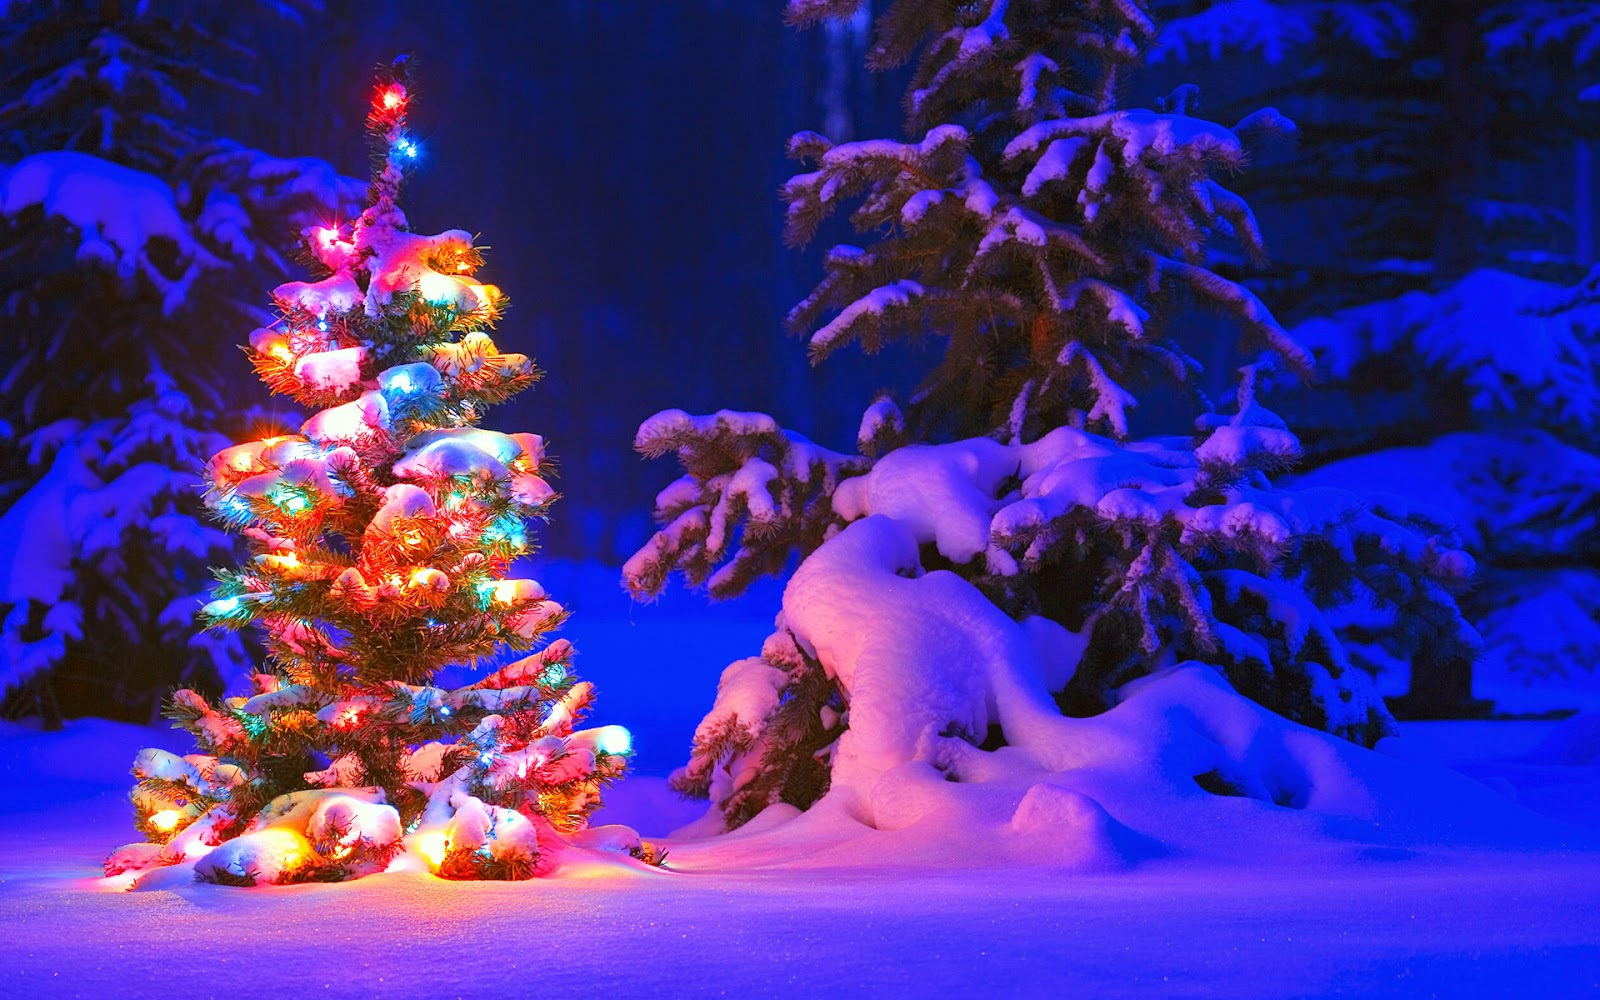 Christmas Tree In Snow Land Wallpaper Wallpapers Hd